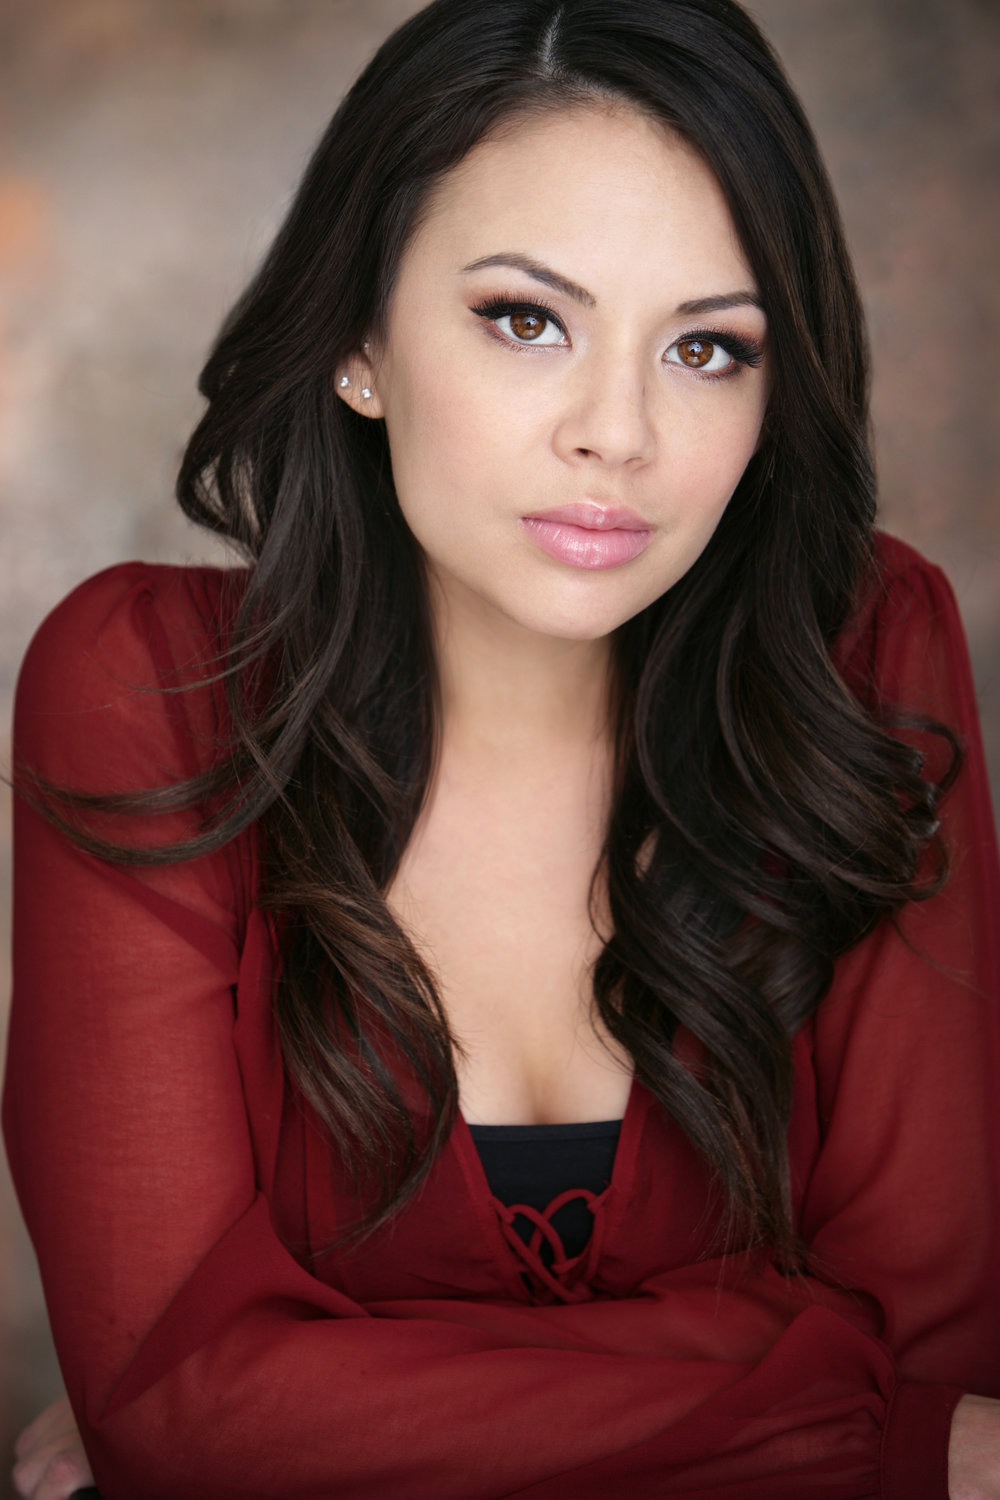 Janel Parrish headshot by Shandon Photography